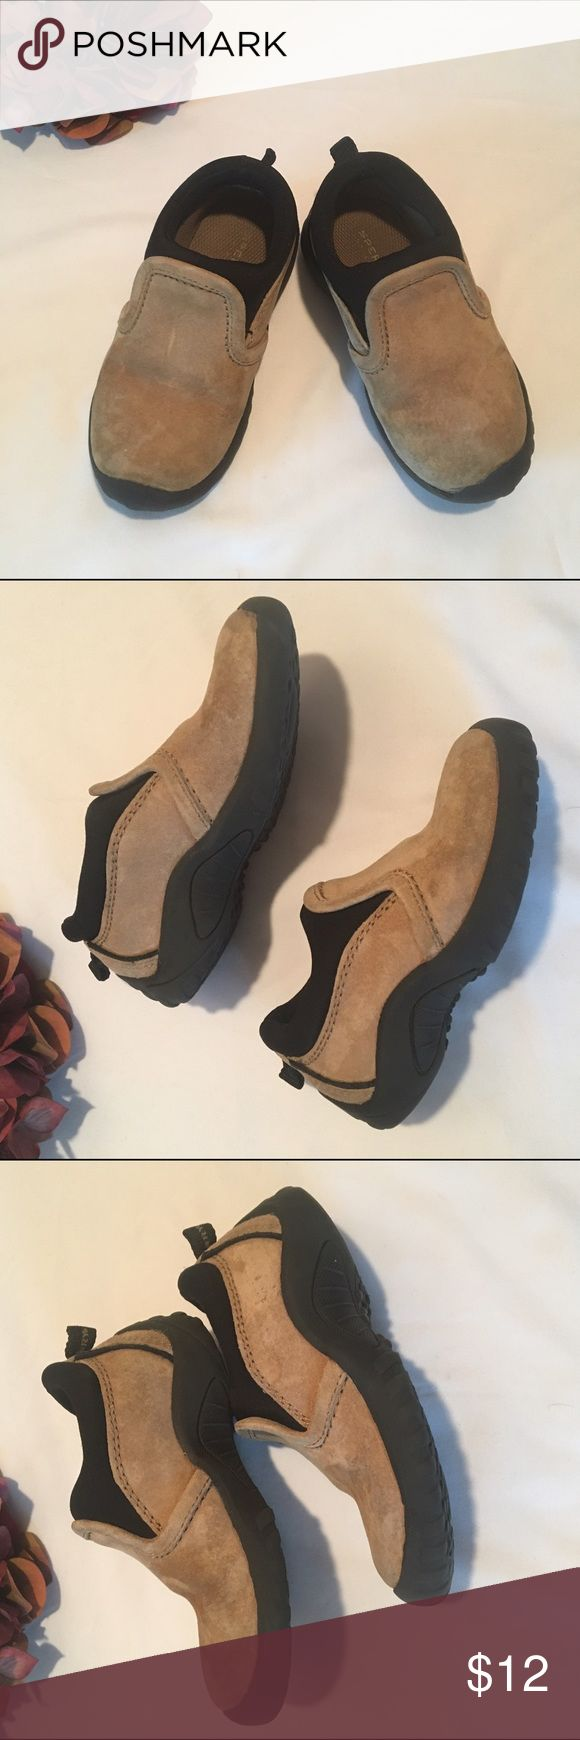 Sperry Topsider Port slipons Toddlers Sperry Topsiders Port suede leather slipons, size 9W. Leather is in good condition, mild normal wear to uppers and soles, lots of life in them! Comes from smoke free home! Sperry Top-Sider Shoes Slippers